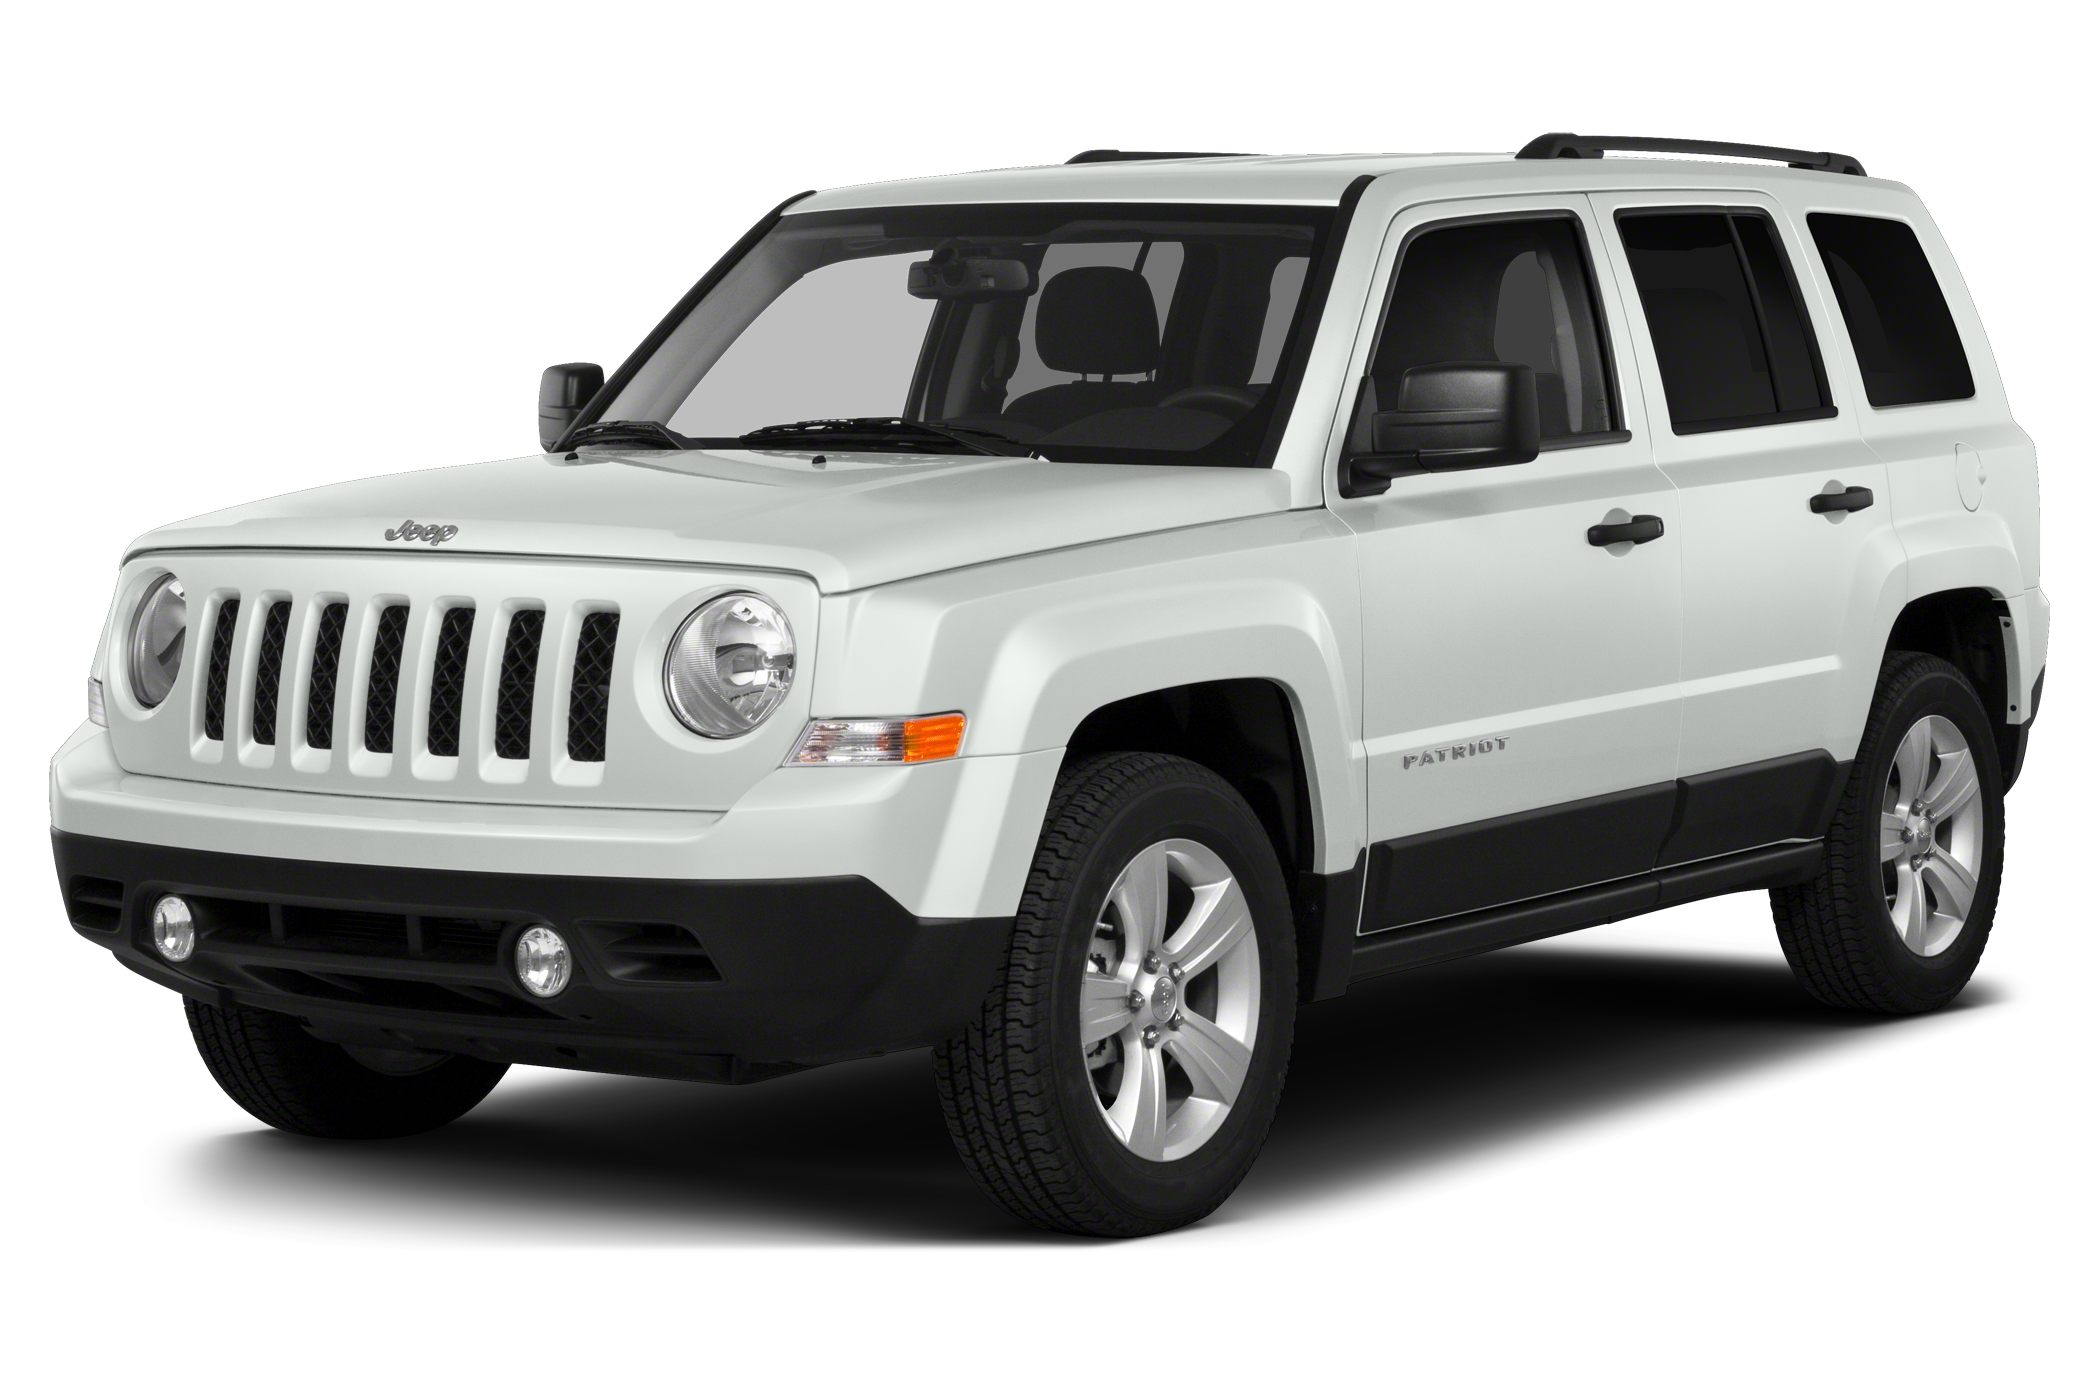 2014 Jeep Patriot Sport This 2014 Jeep Patriot 4dr FWD 4dr Sport features a 24L 4 CYLINDER 4cyl G